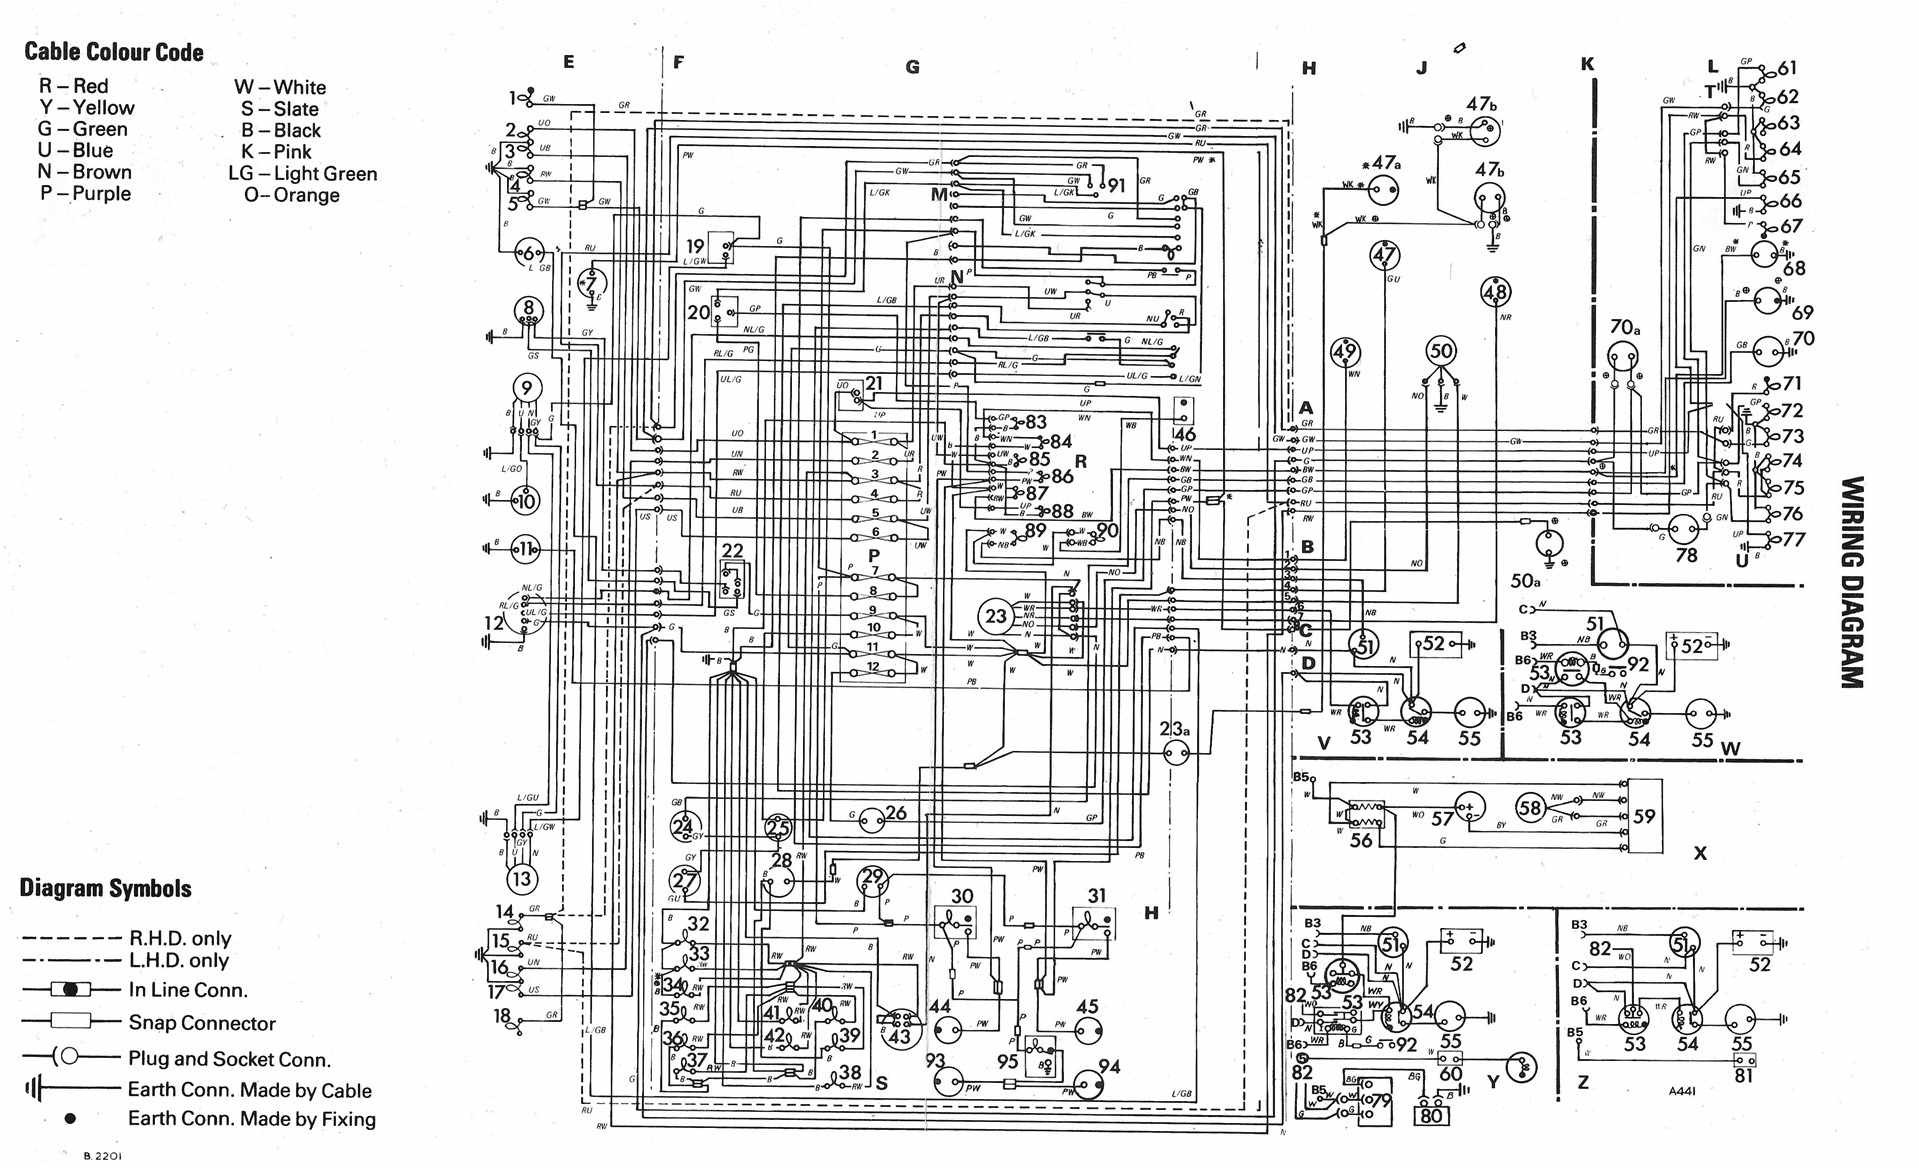 2000 Vw Jetta 2 0 Engine Diagram 2 Vw Jetta Wiring Diagram Wiring